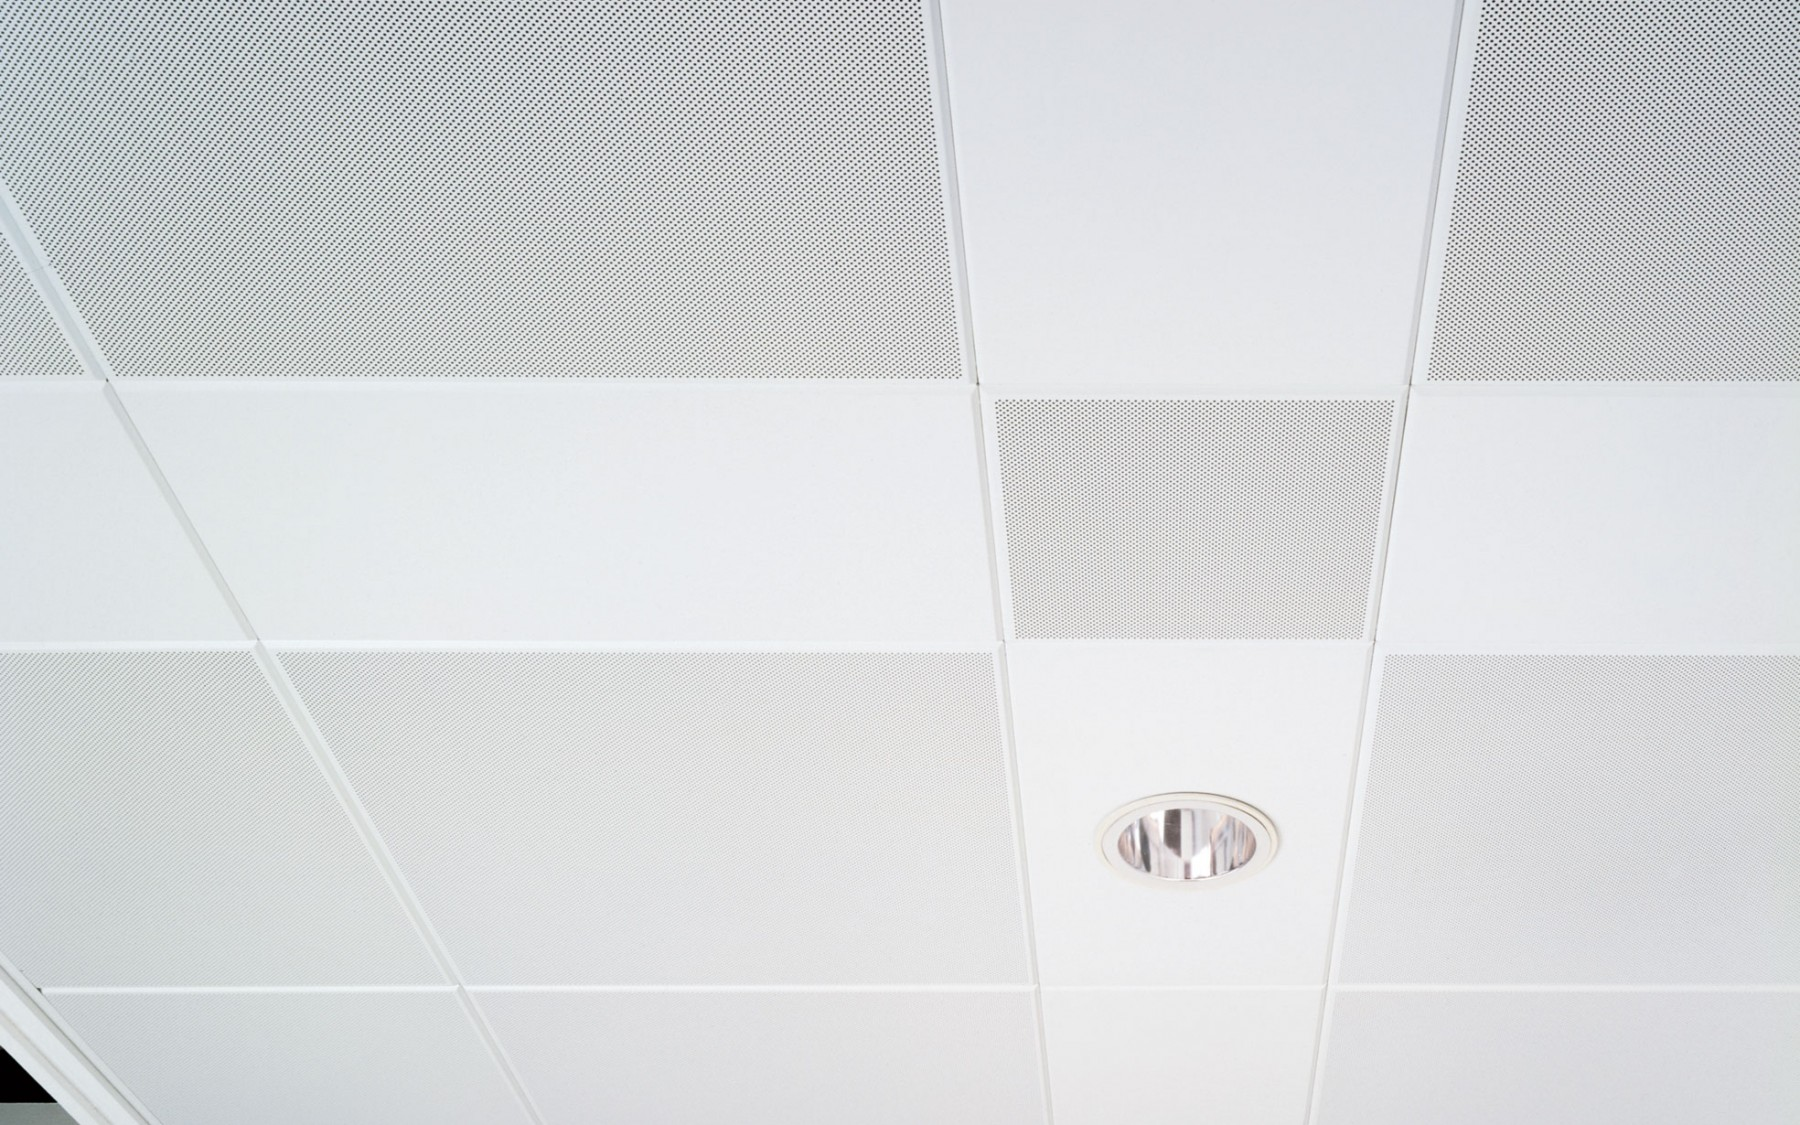 DAMPA Clip-In Tiles with bevelled edge and Light fittings